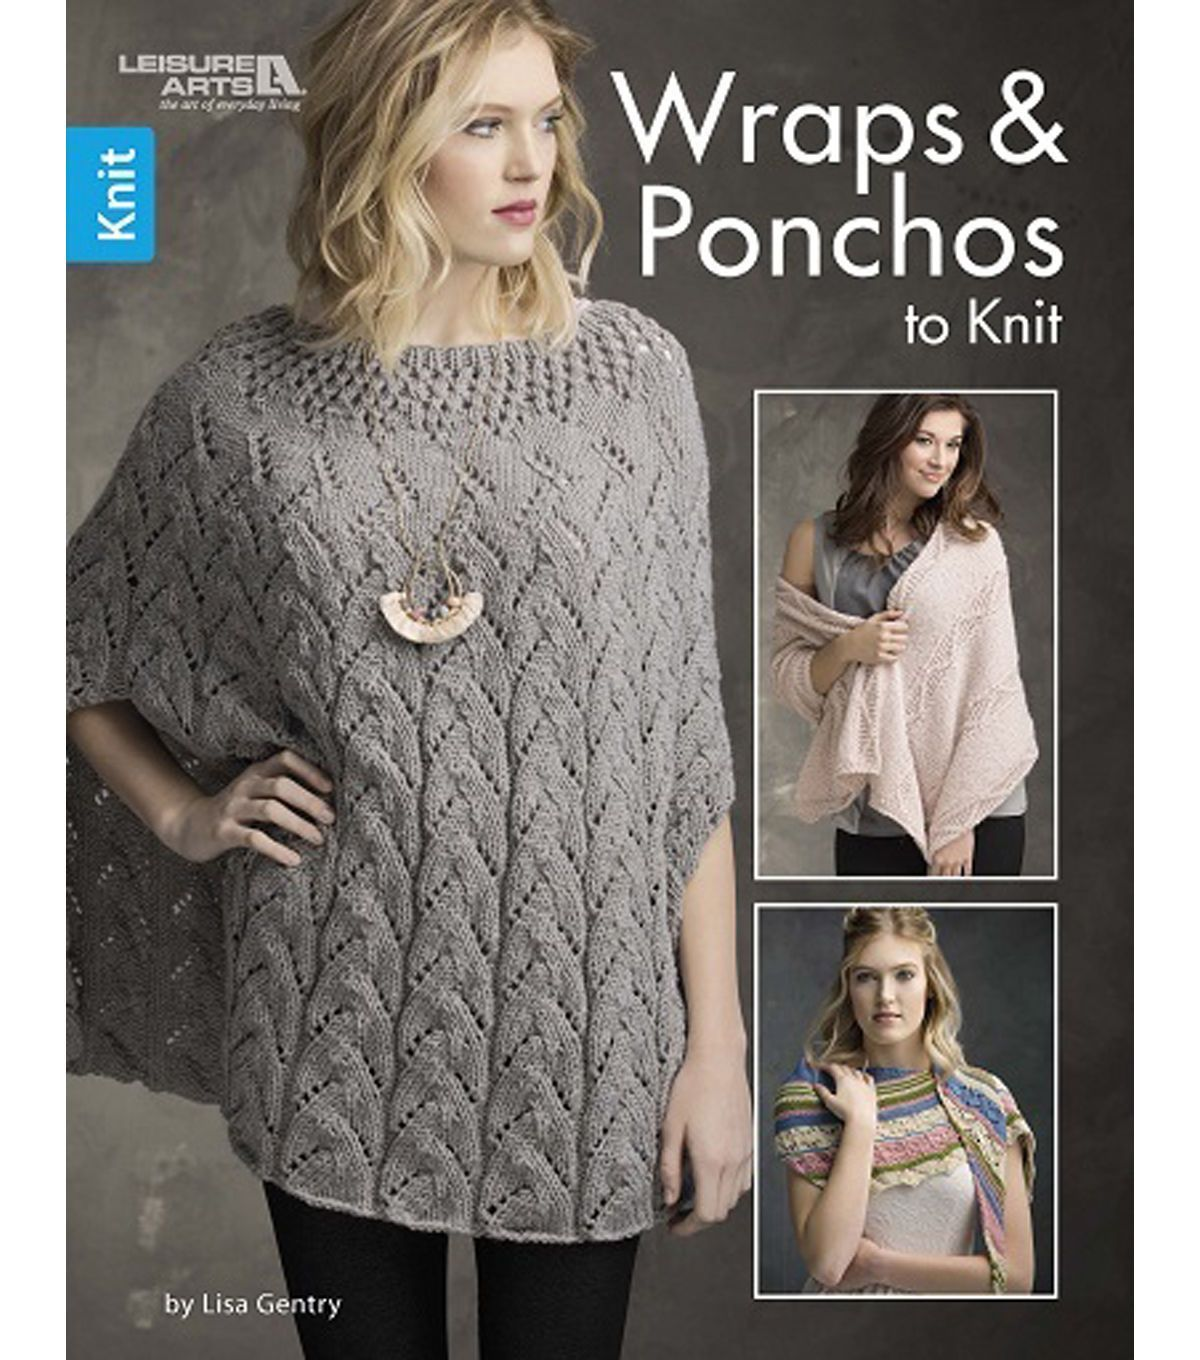 dd0294a5e Wraps and Ponchos to Knit from Leisure Arts offers five stylish designs to  match many moods. Lacy patterns provide a hint of romance